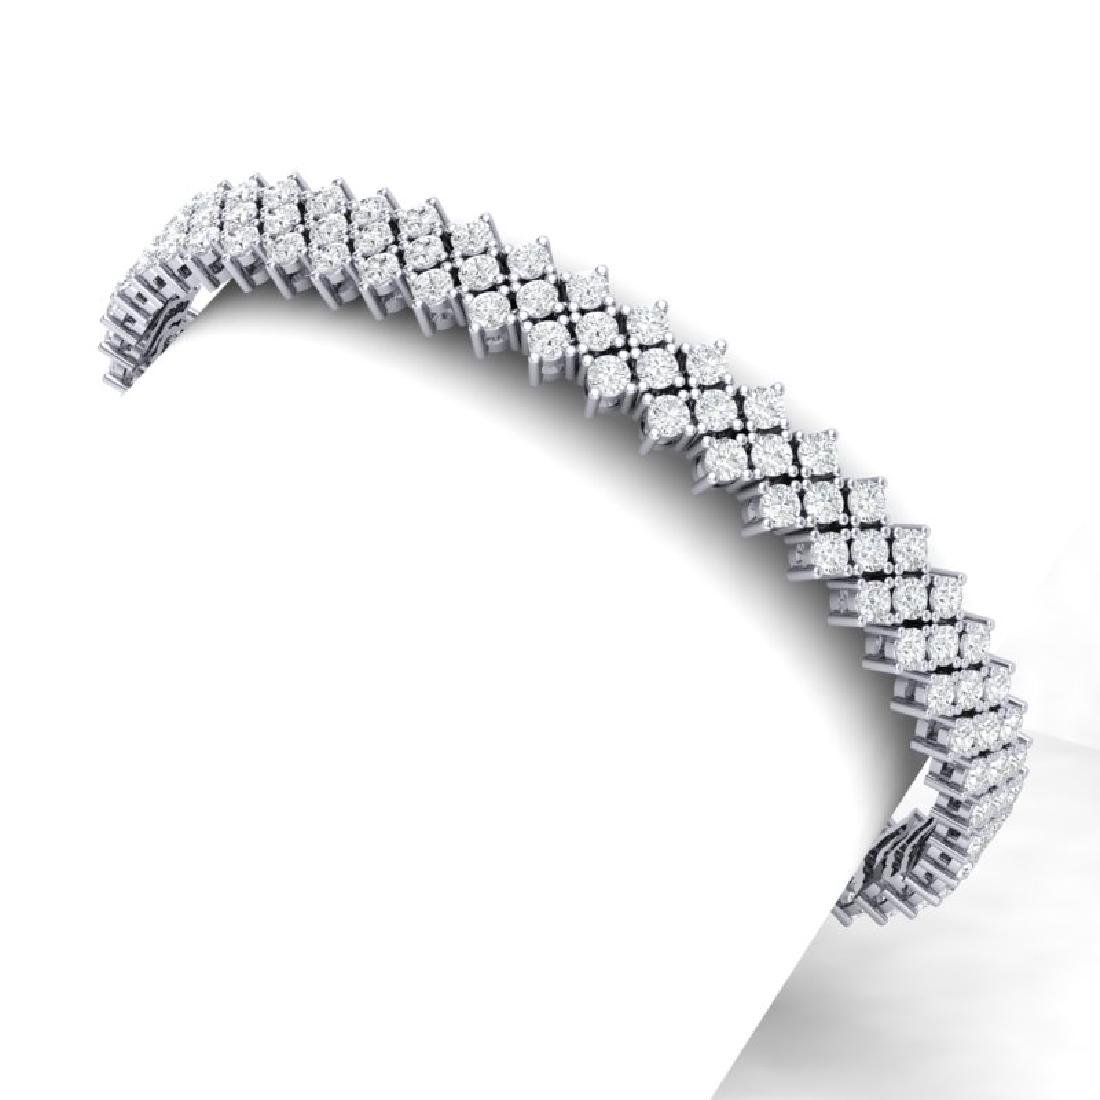 10 CTW Certified SI/I Diamond Bracelet 18K White Gold